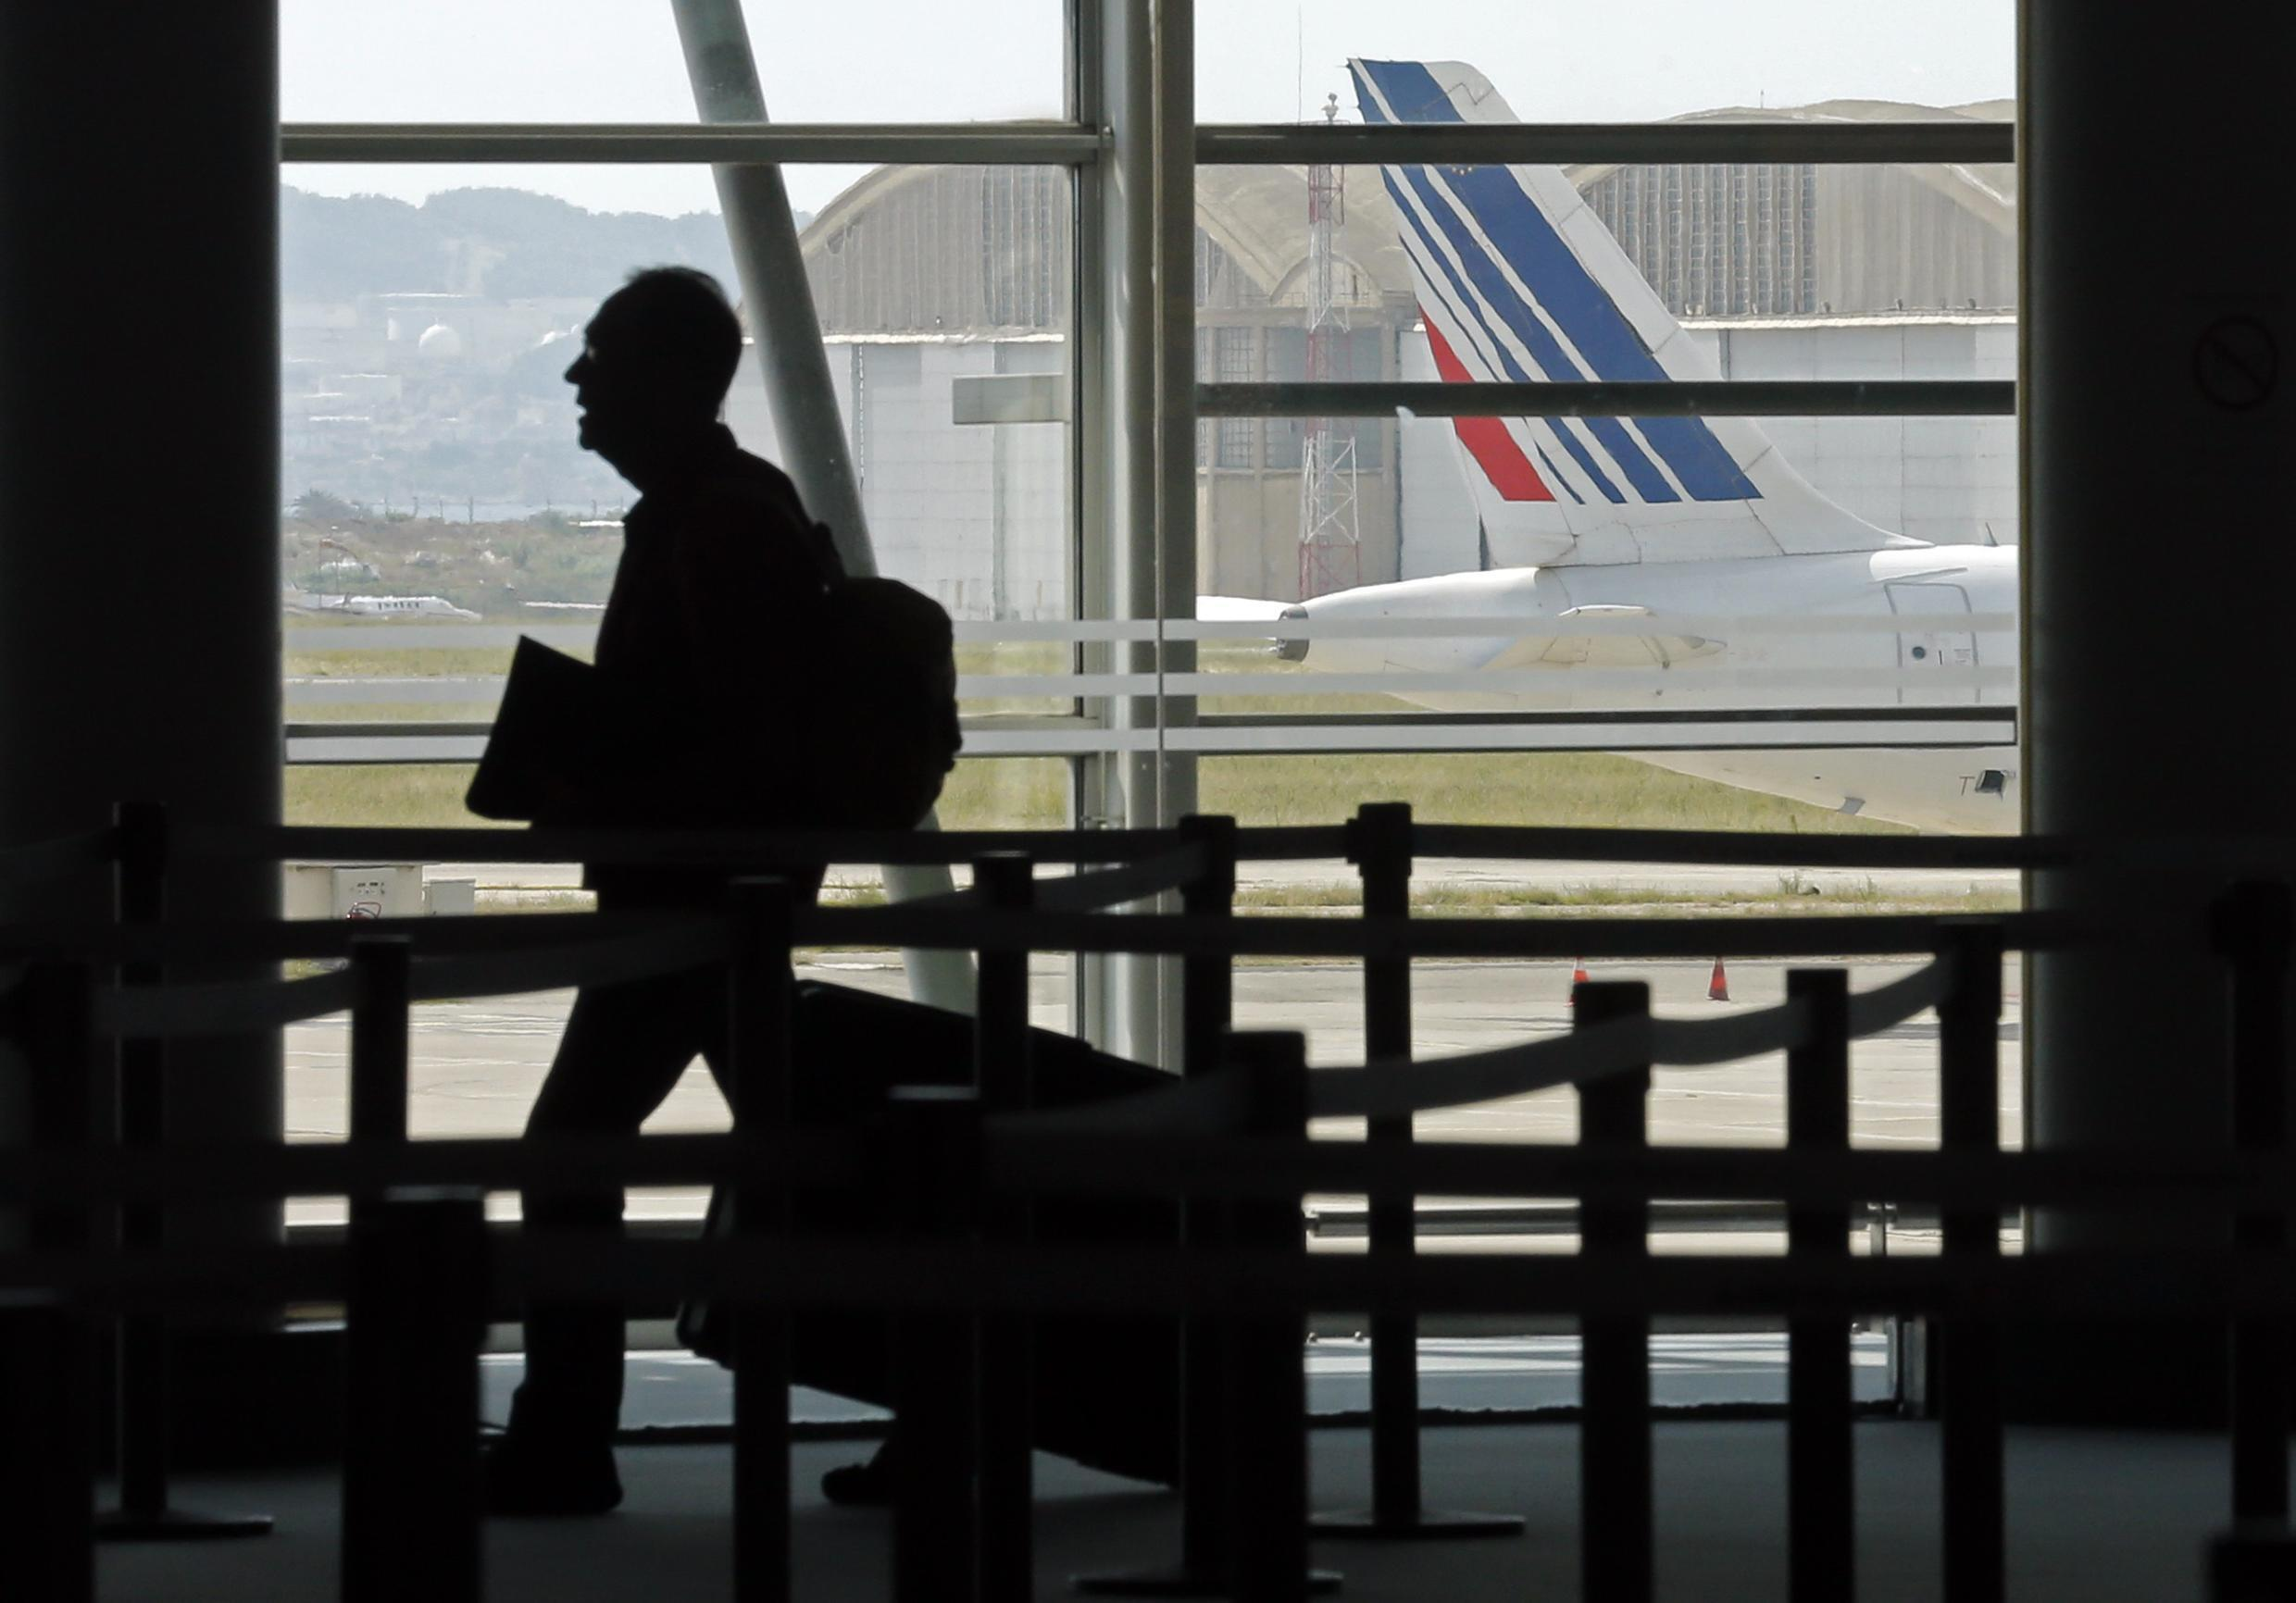 Marseille airport on Friday